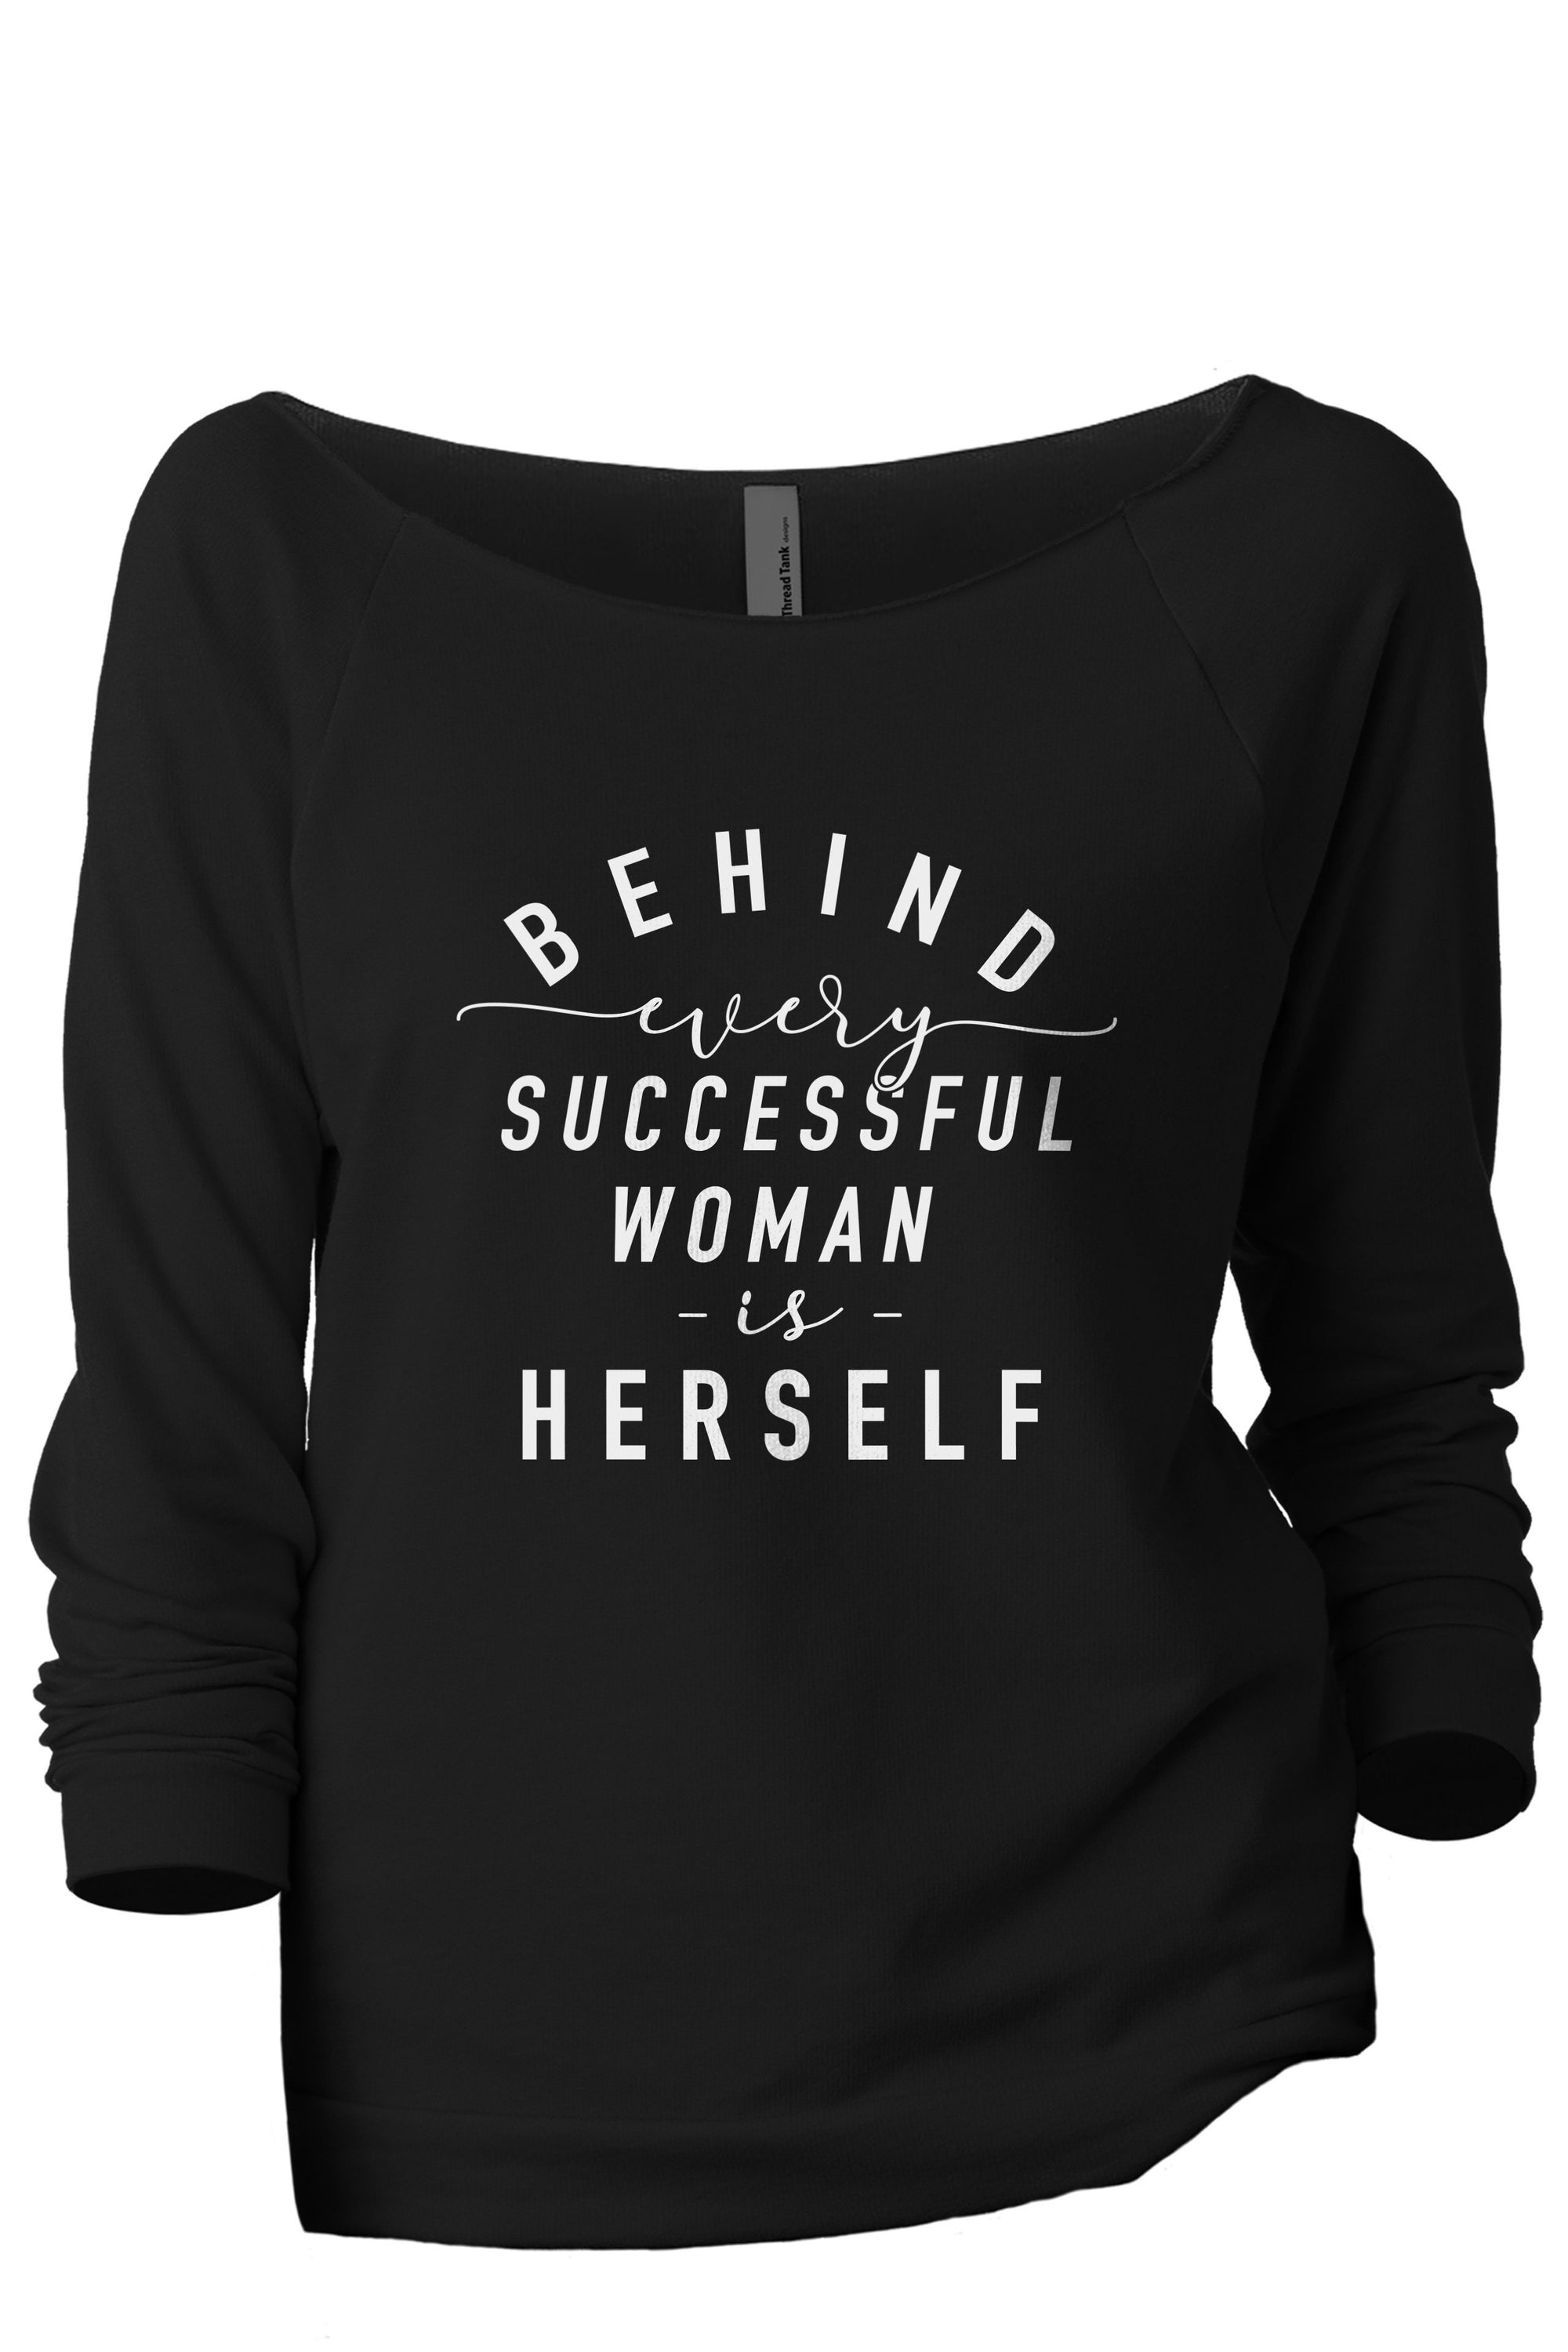 Behind Every Successful Woman Is Herself - Stories You Can Wear by Thread Tank